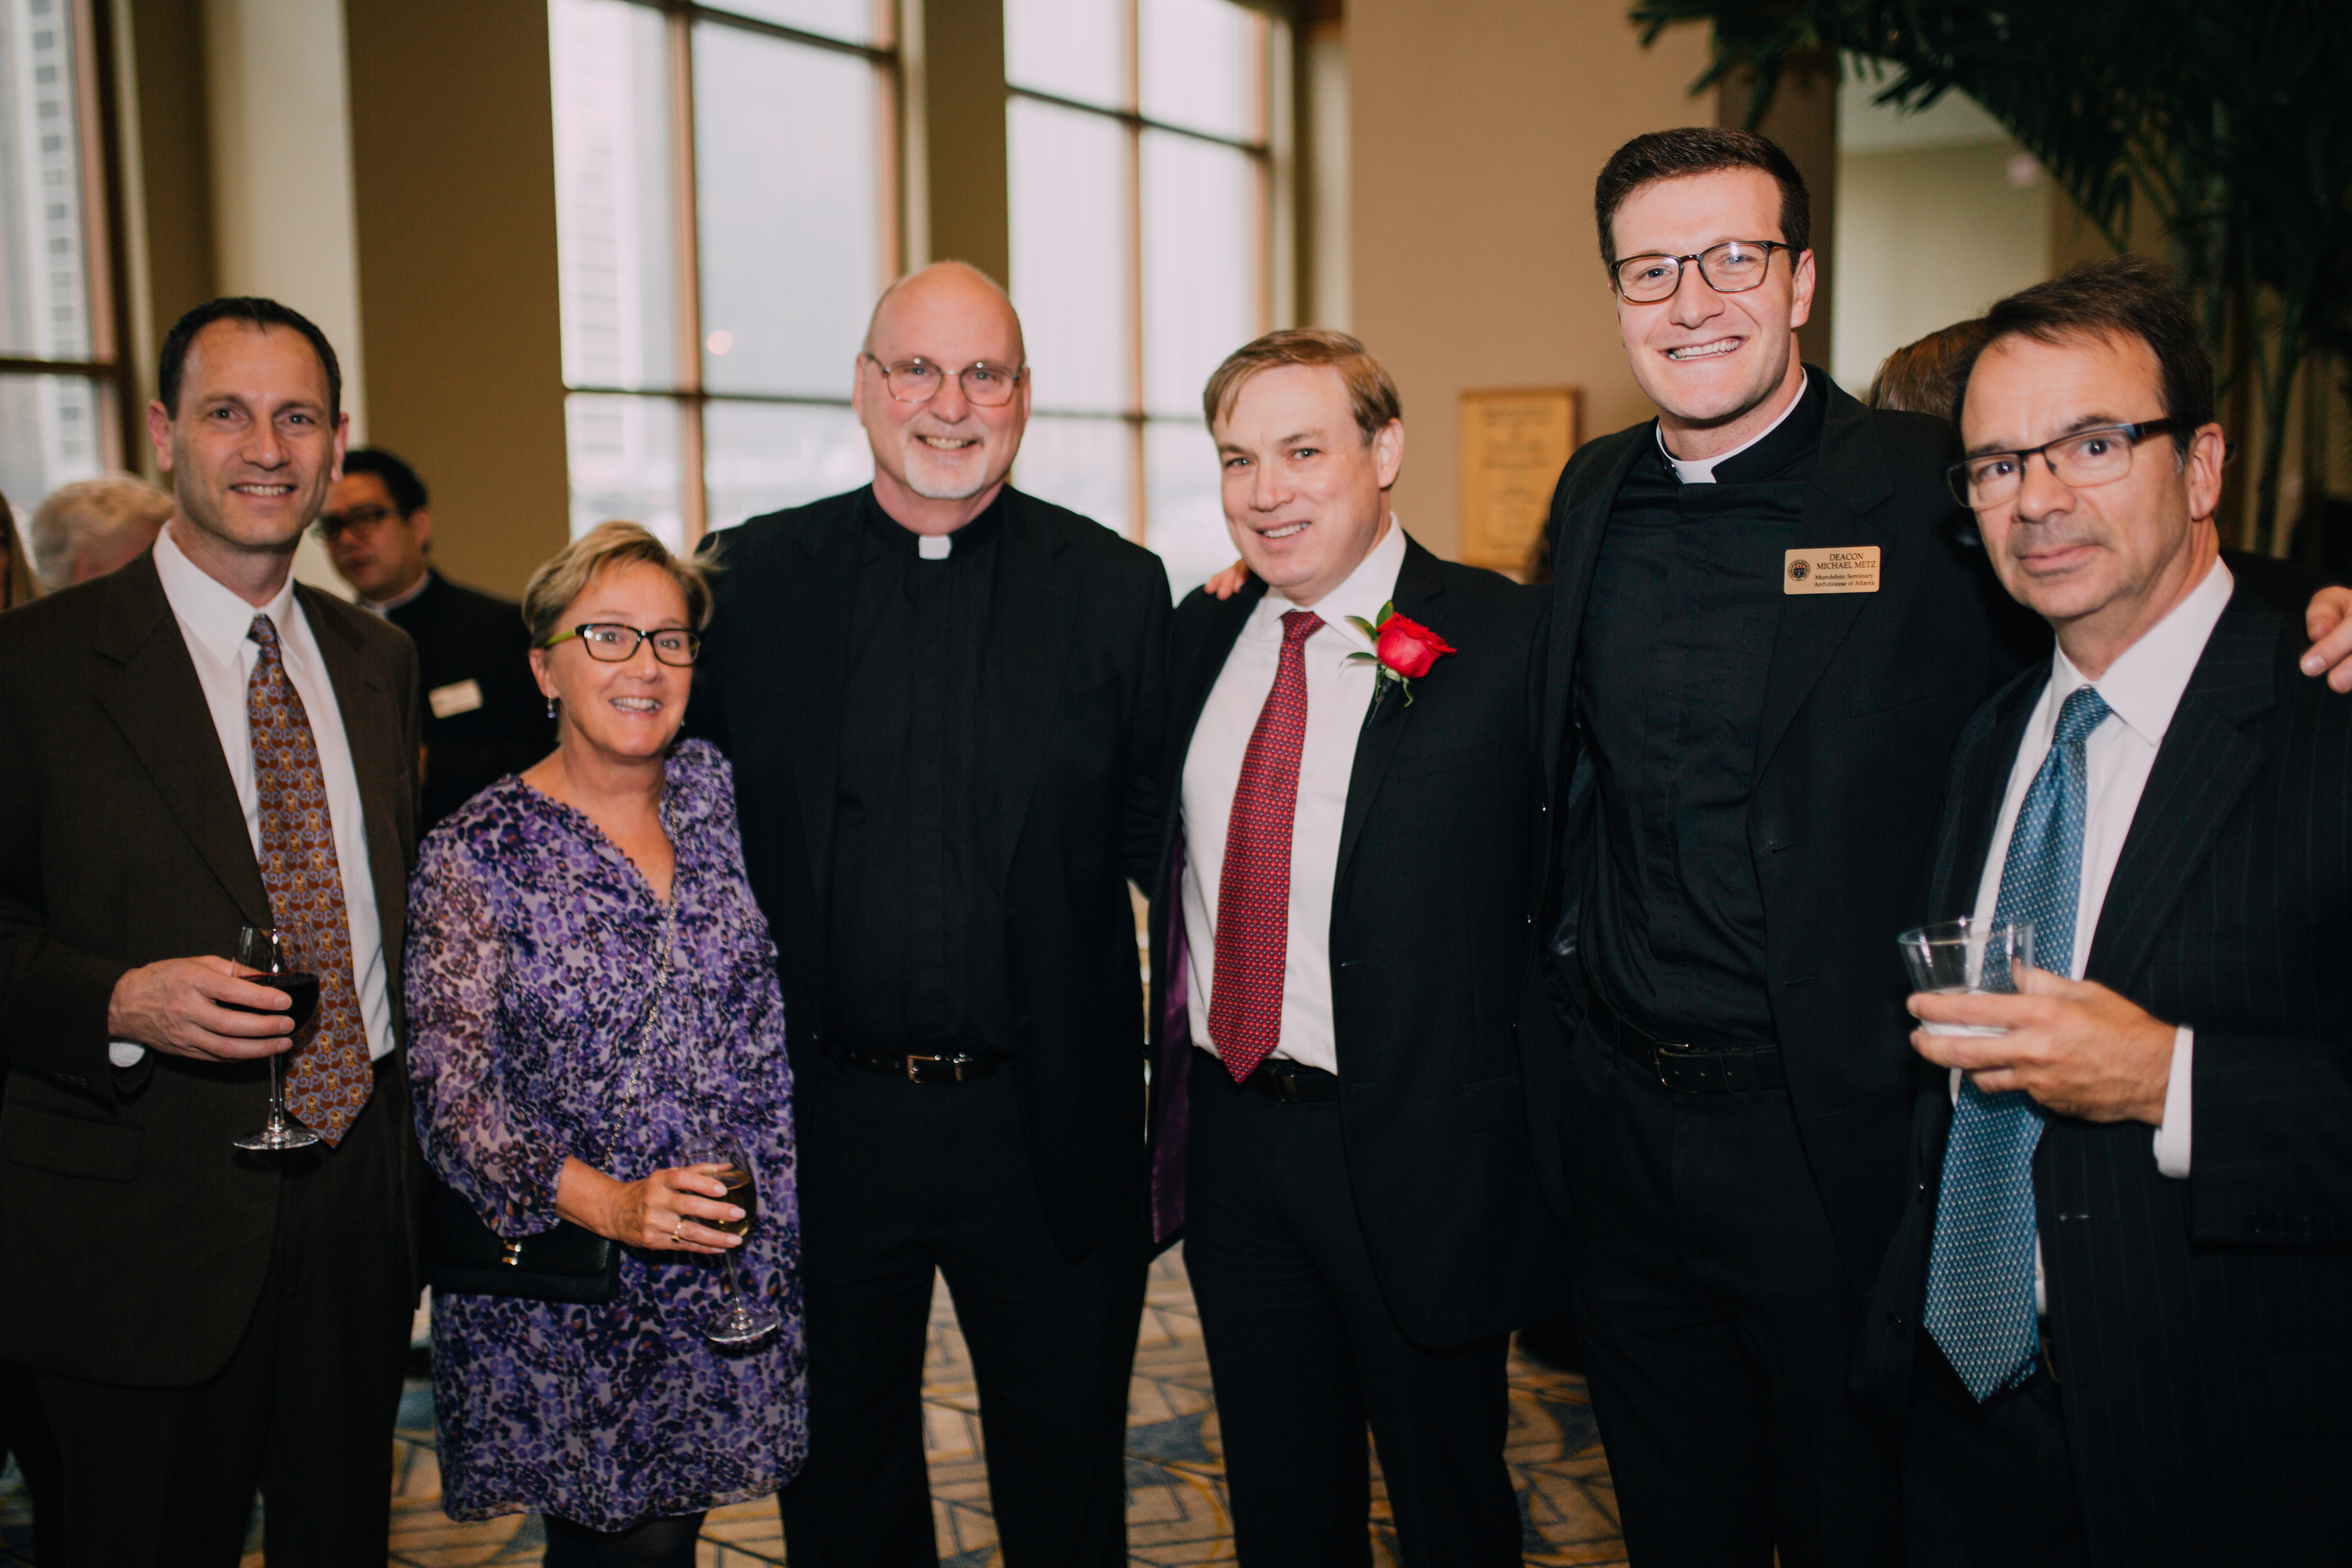 University saint mary of the lake raises over $40,000!